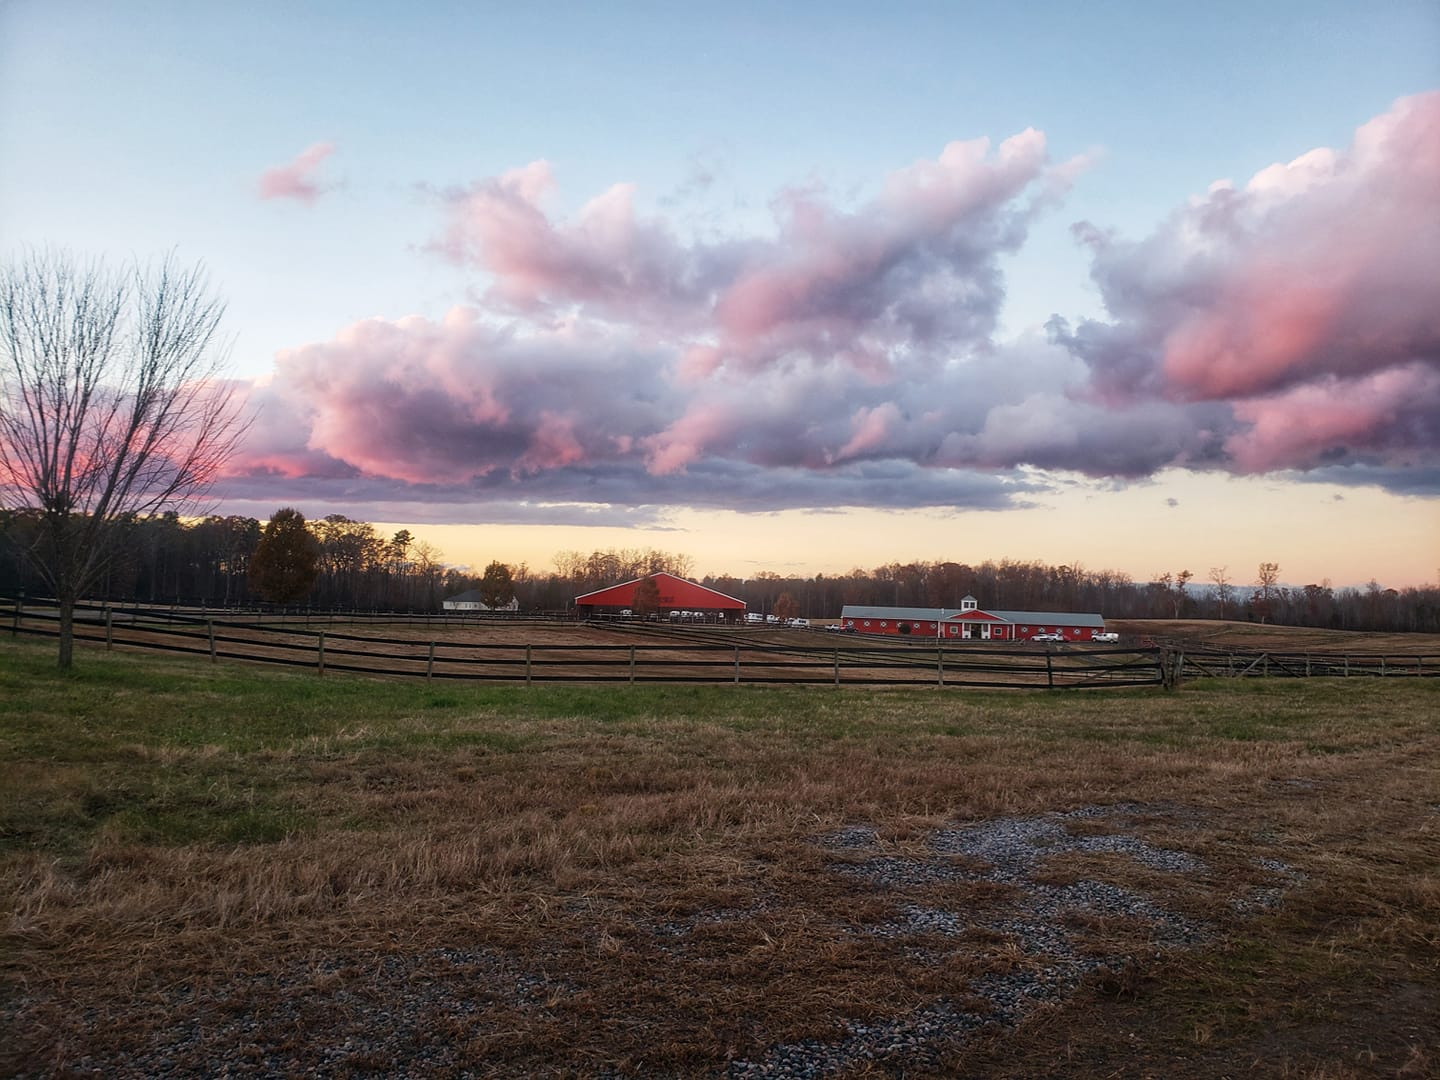 The prettiest sunsets are at RRRC